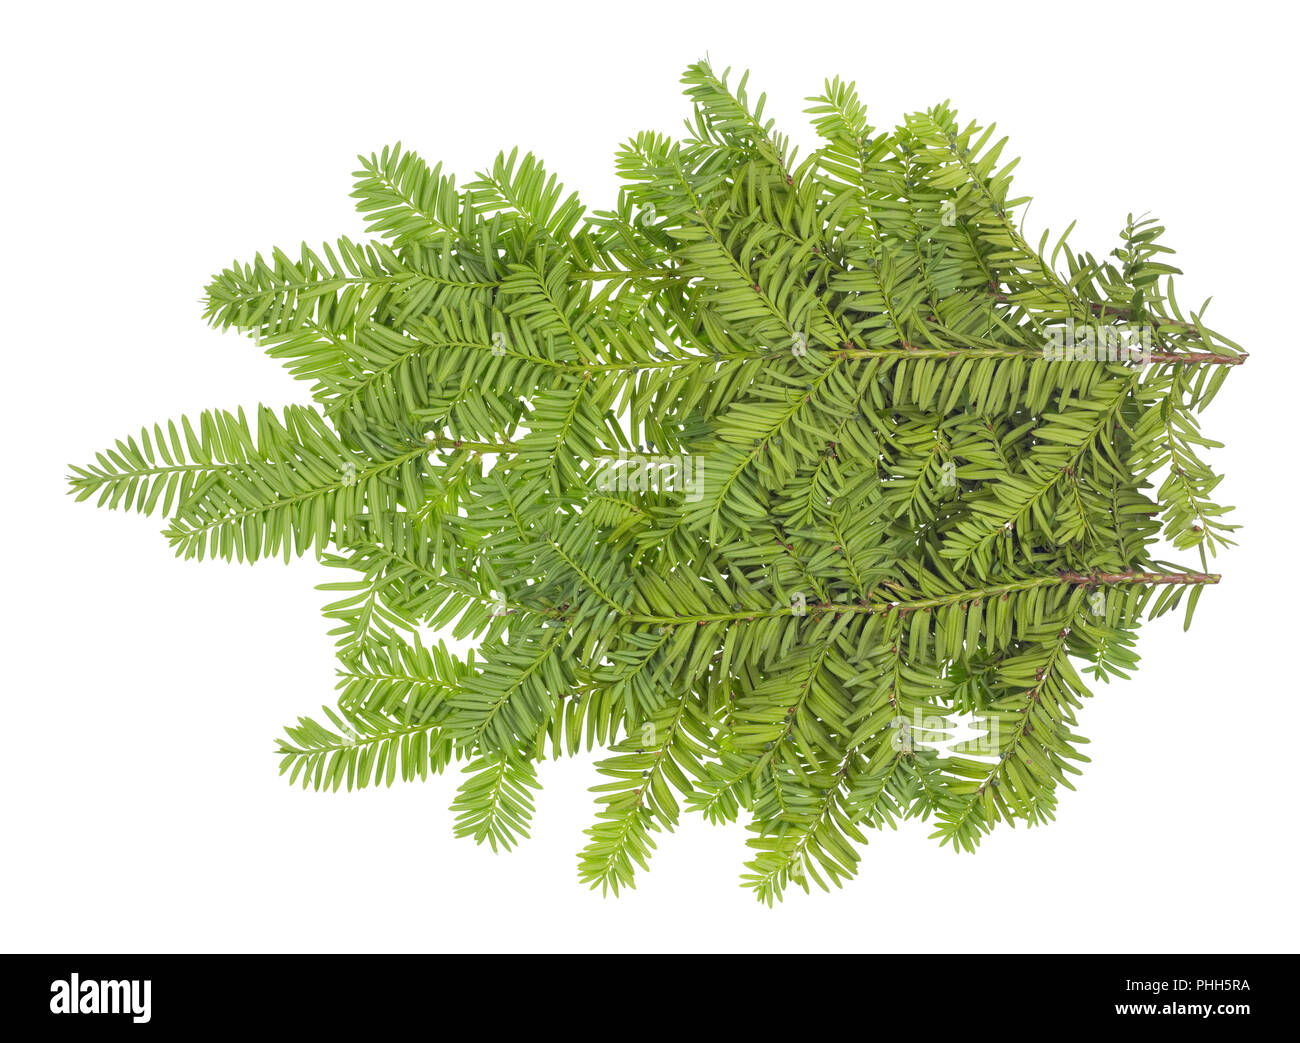 Branche of an evergreen coniferous  Yew  xmas tree. - Stock Image